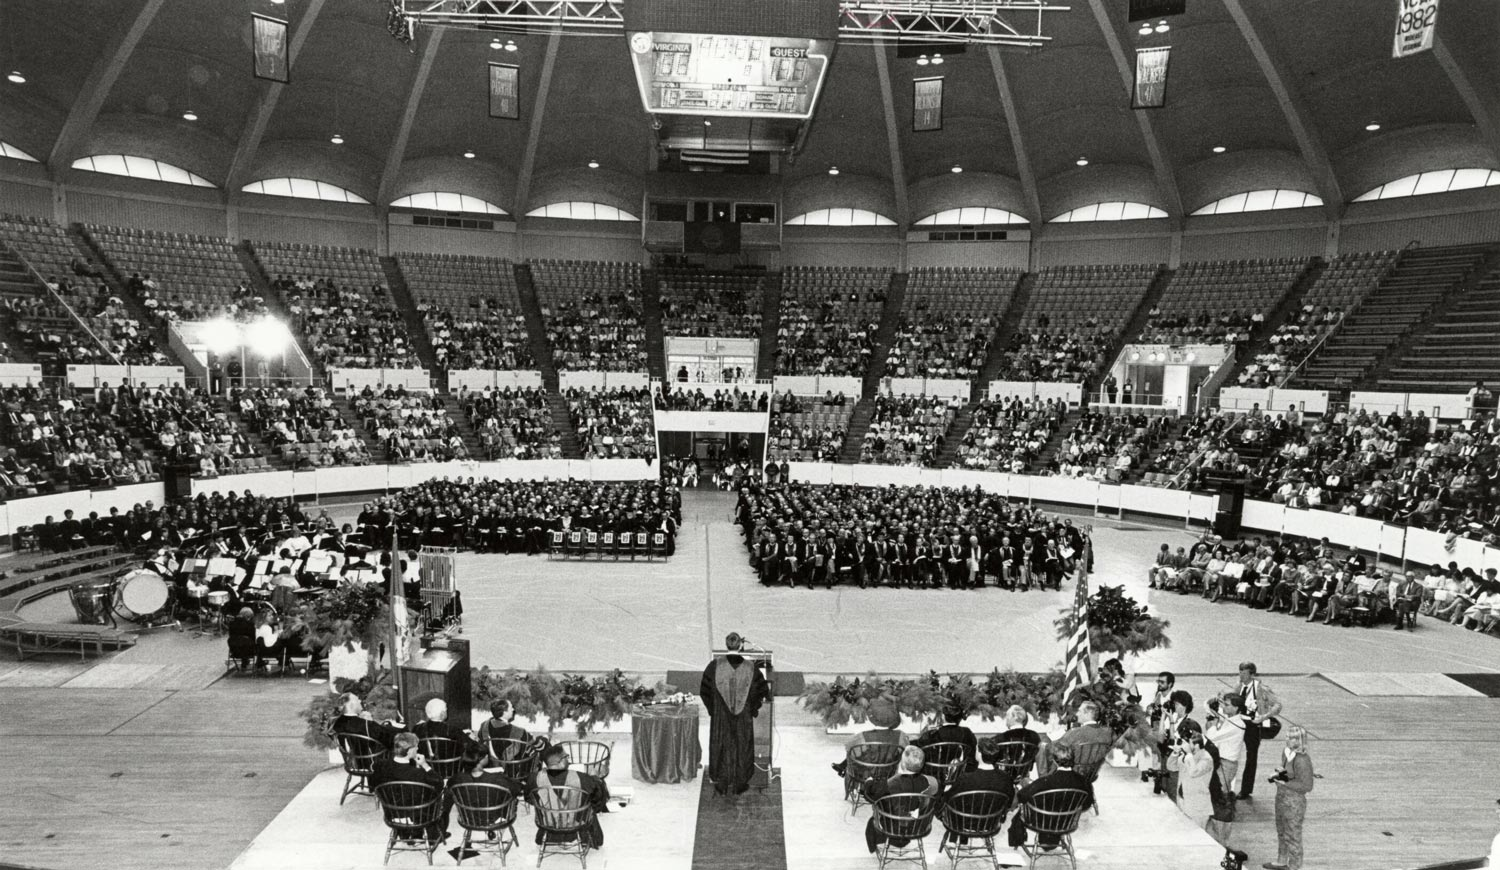 The inauguration of President Robert M. O'Neil, due to bad weather, took place indoors. O'Neil died in September at age 83.